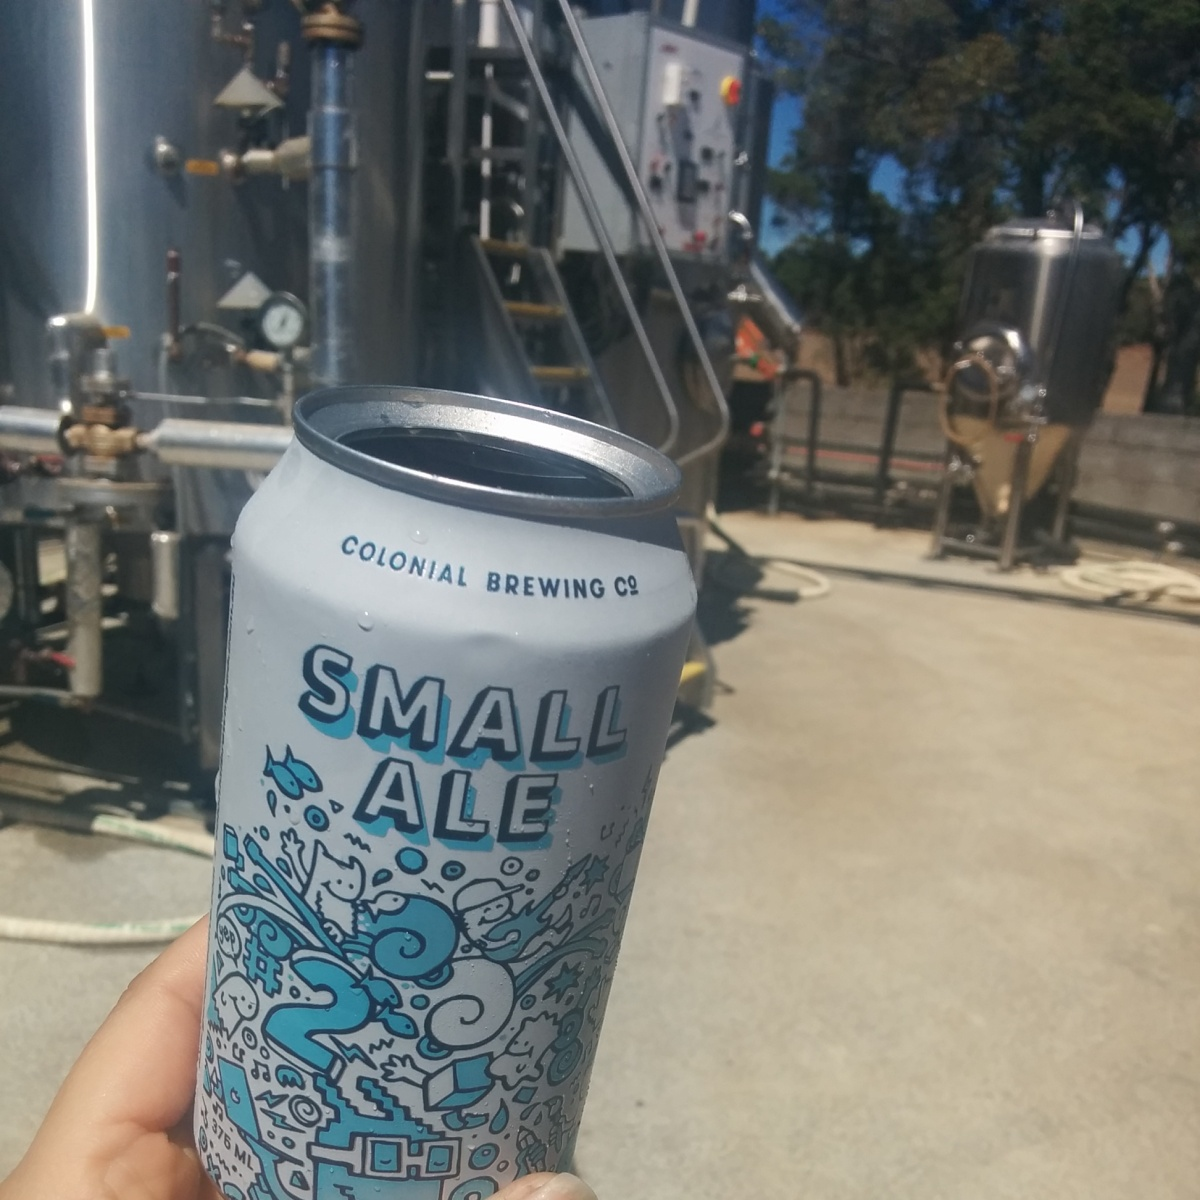 Interview: Designers of the Colonial Small Ale can